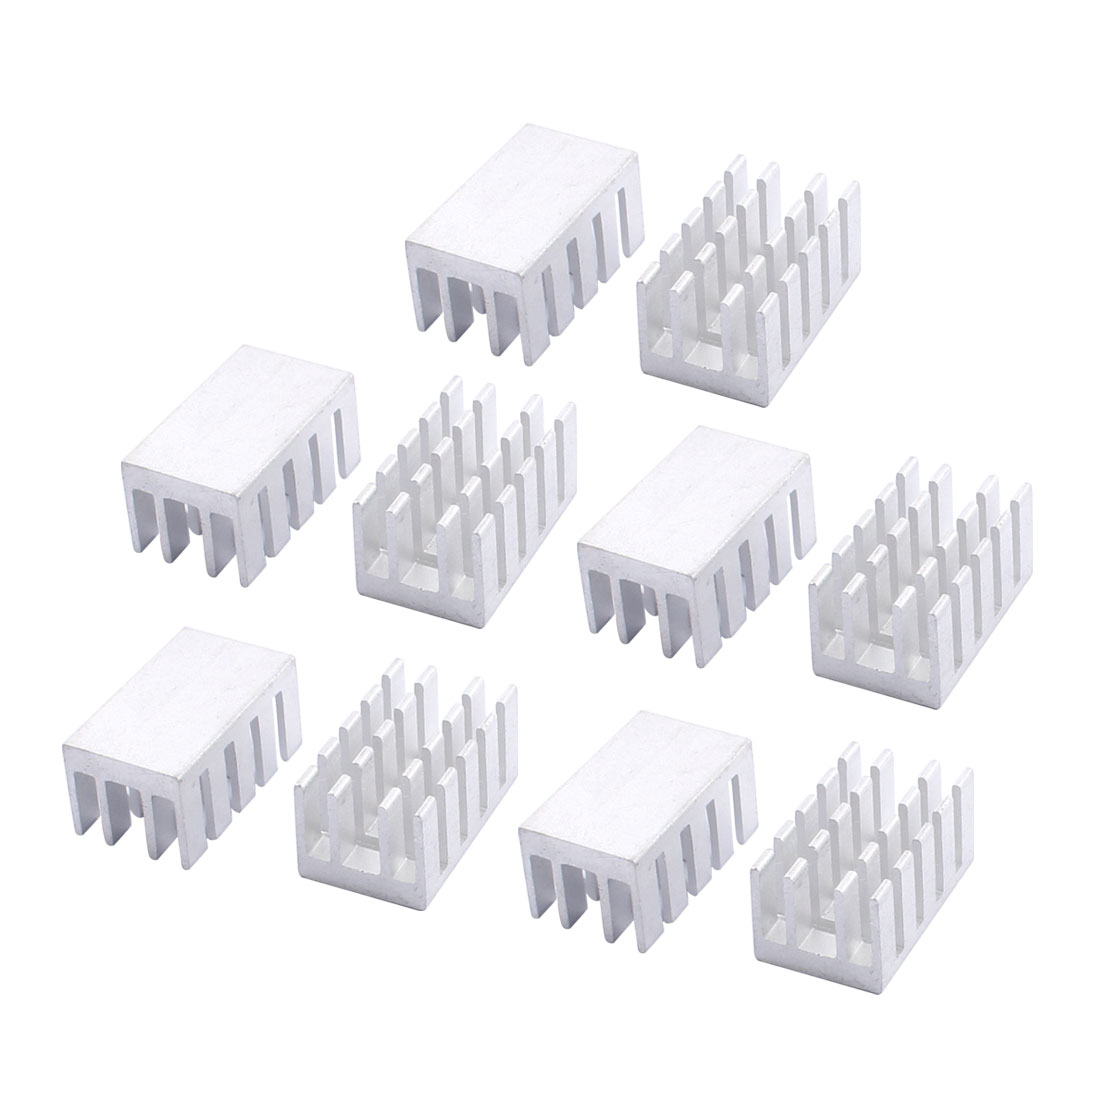 10pcs 22x13x11mm Aluminium Heat Sink Radiator Fin Heatsink Silver Tone